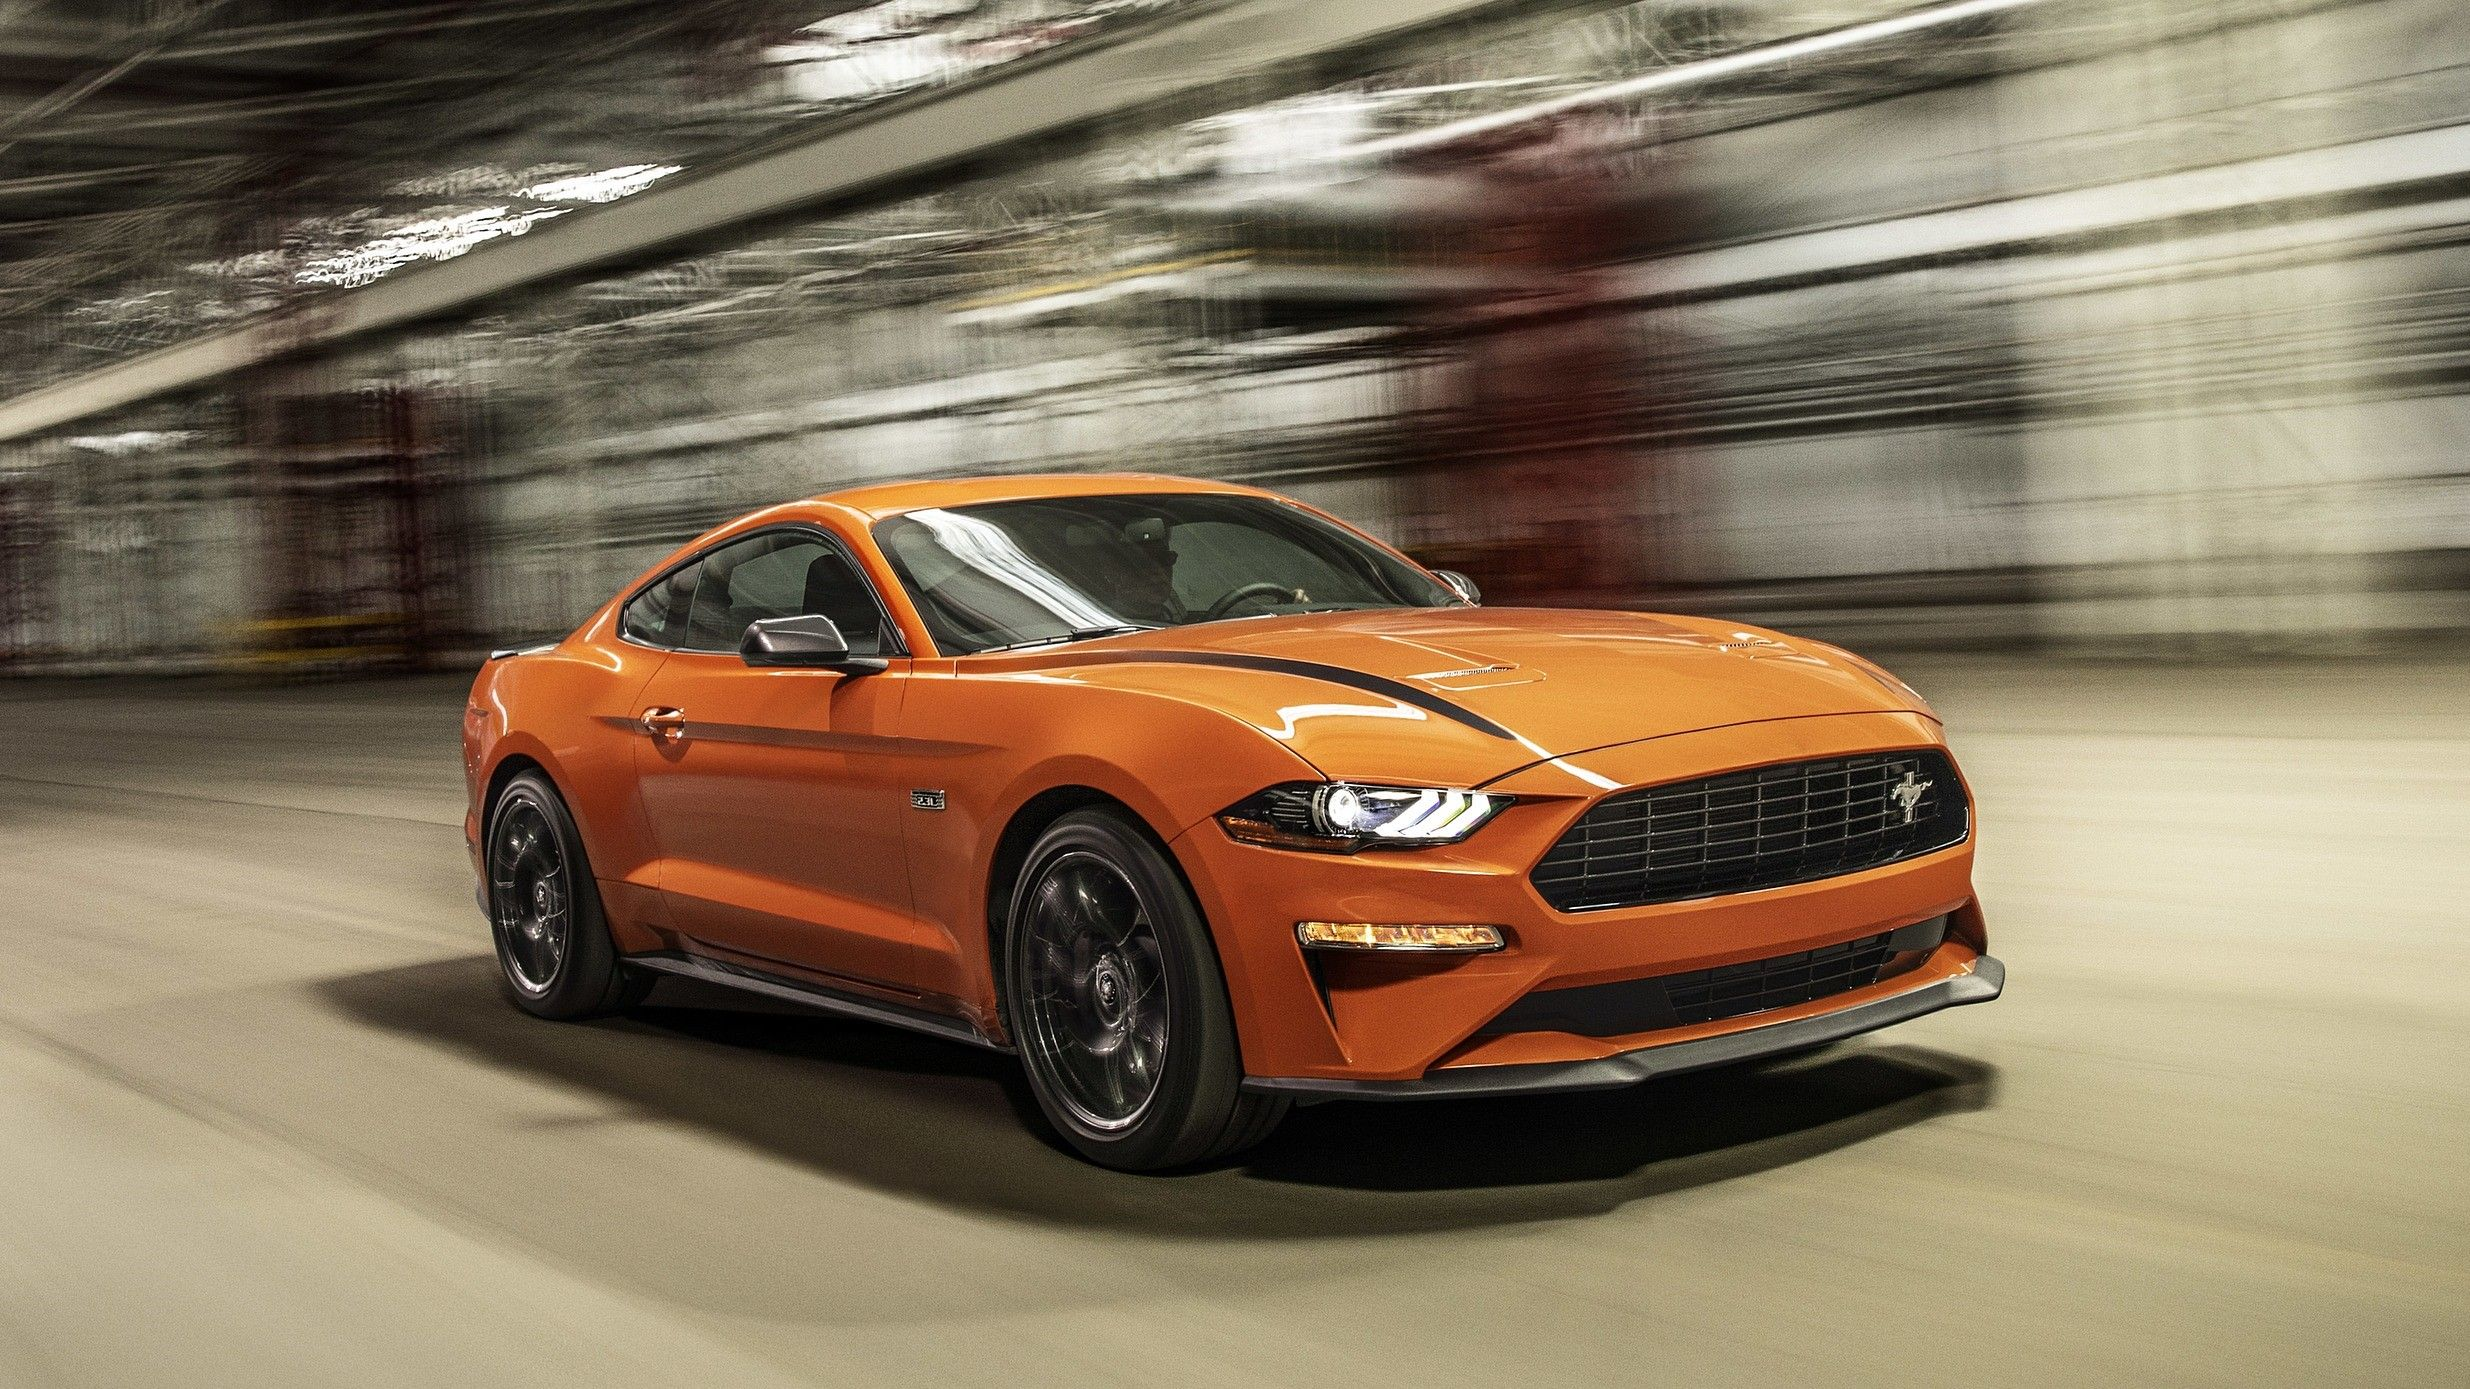 2021 Ford Mustang Review Trims Prices Packages Performance And Rivals Compared